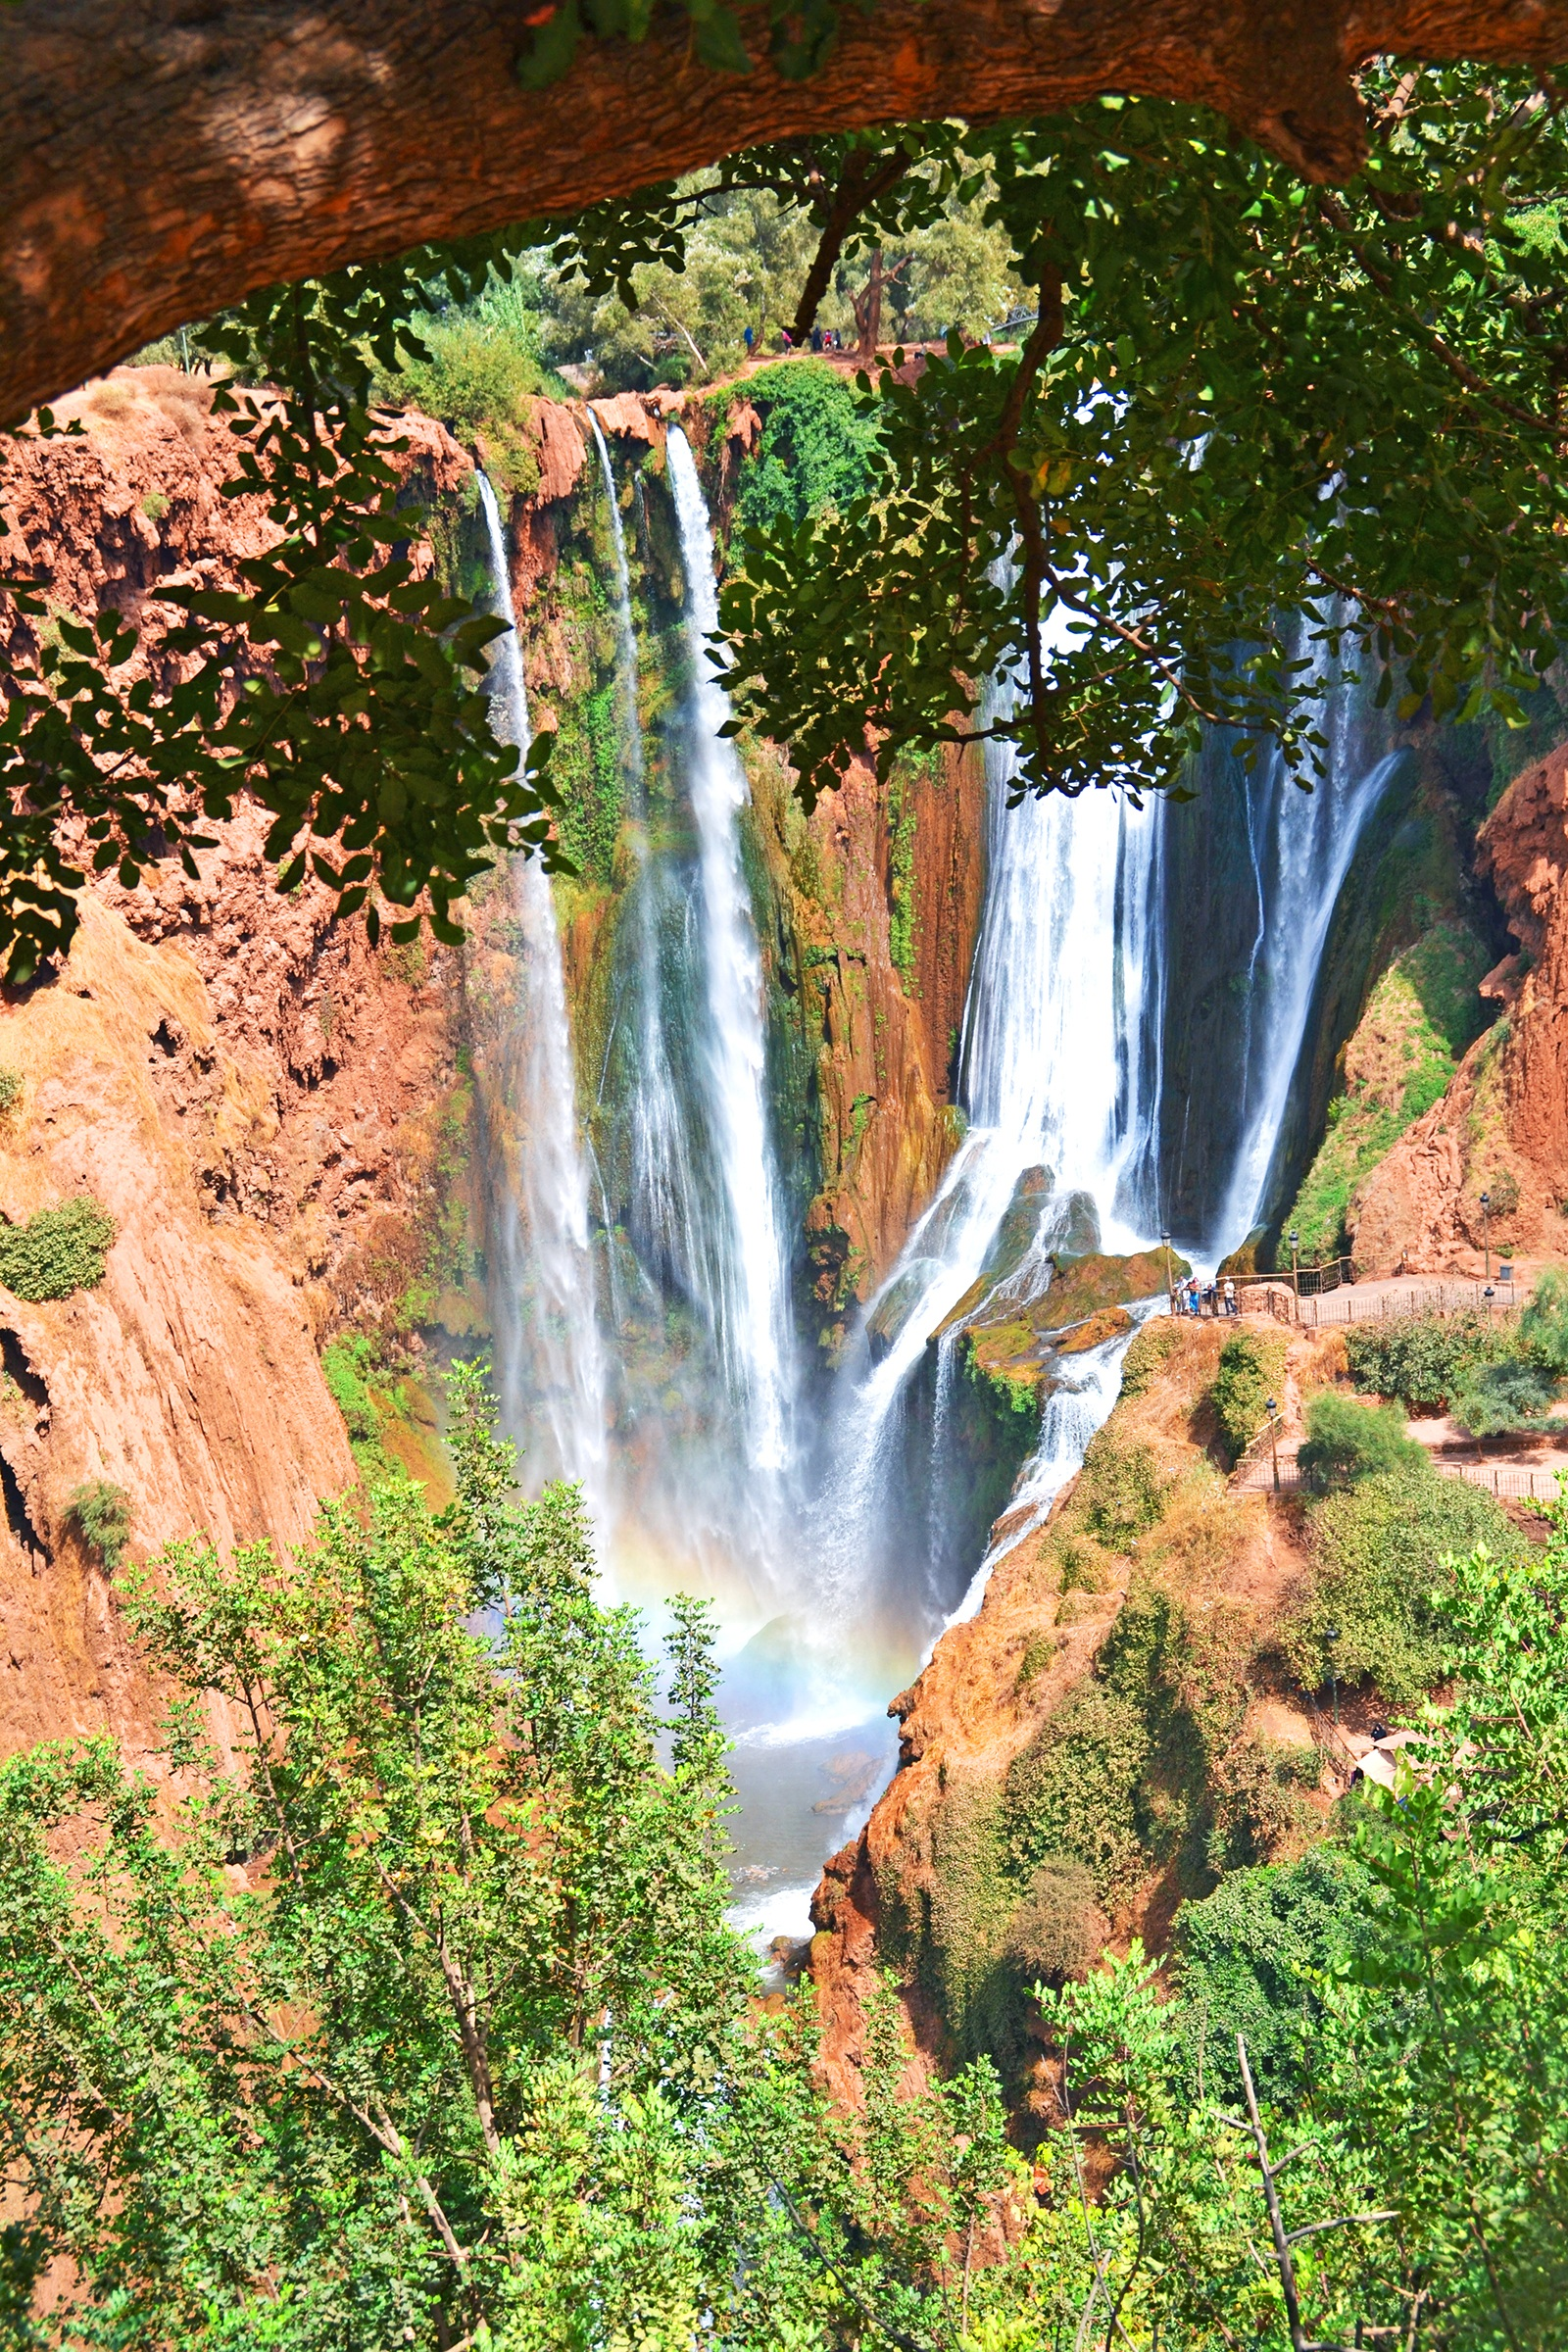 gallery image for 1 Day Shared Trip Ouzoud Waterfalls From Marrakech